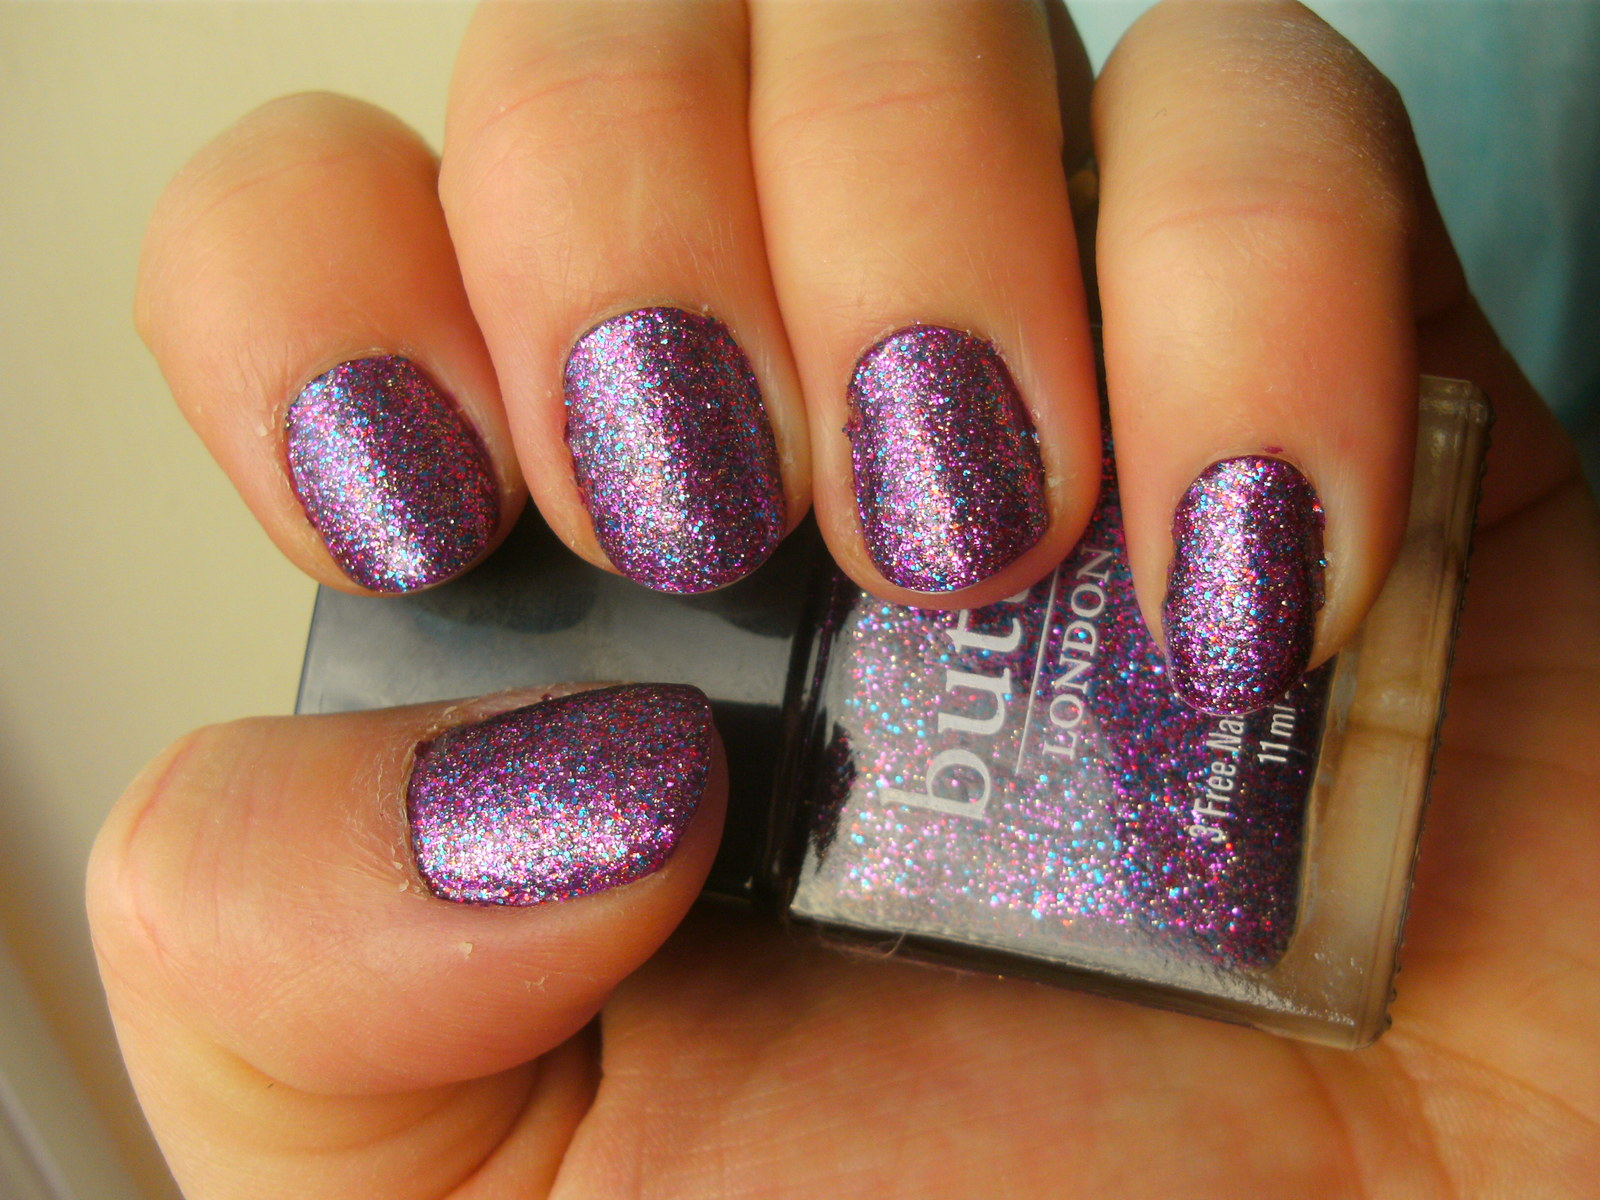 Almost Fot To Post This My Cur Mani Er London Lovely Jubbly Over Zoya Mason